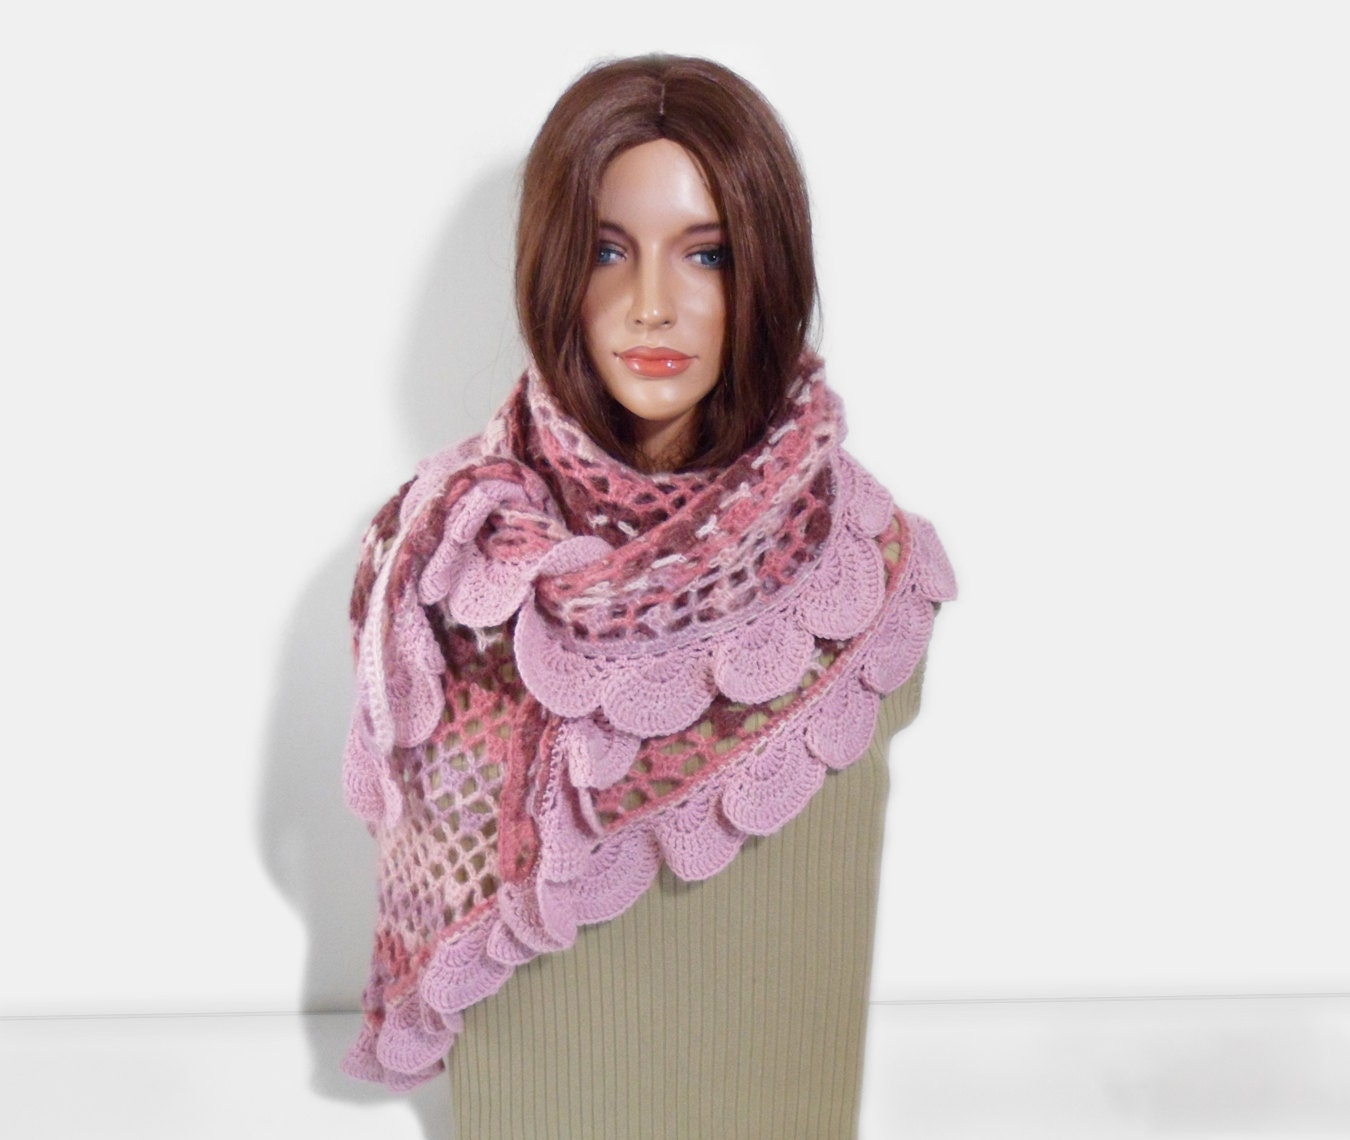 Crochet Shawl, Handmade Triangle Shawl, Winter Accessory in Pink - UnlimitedCraftworks